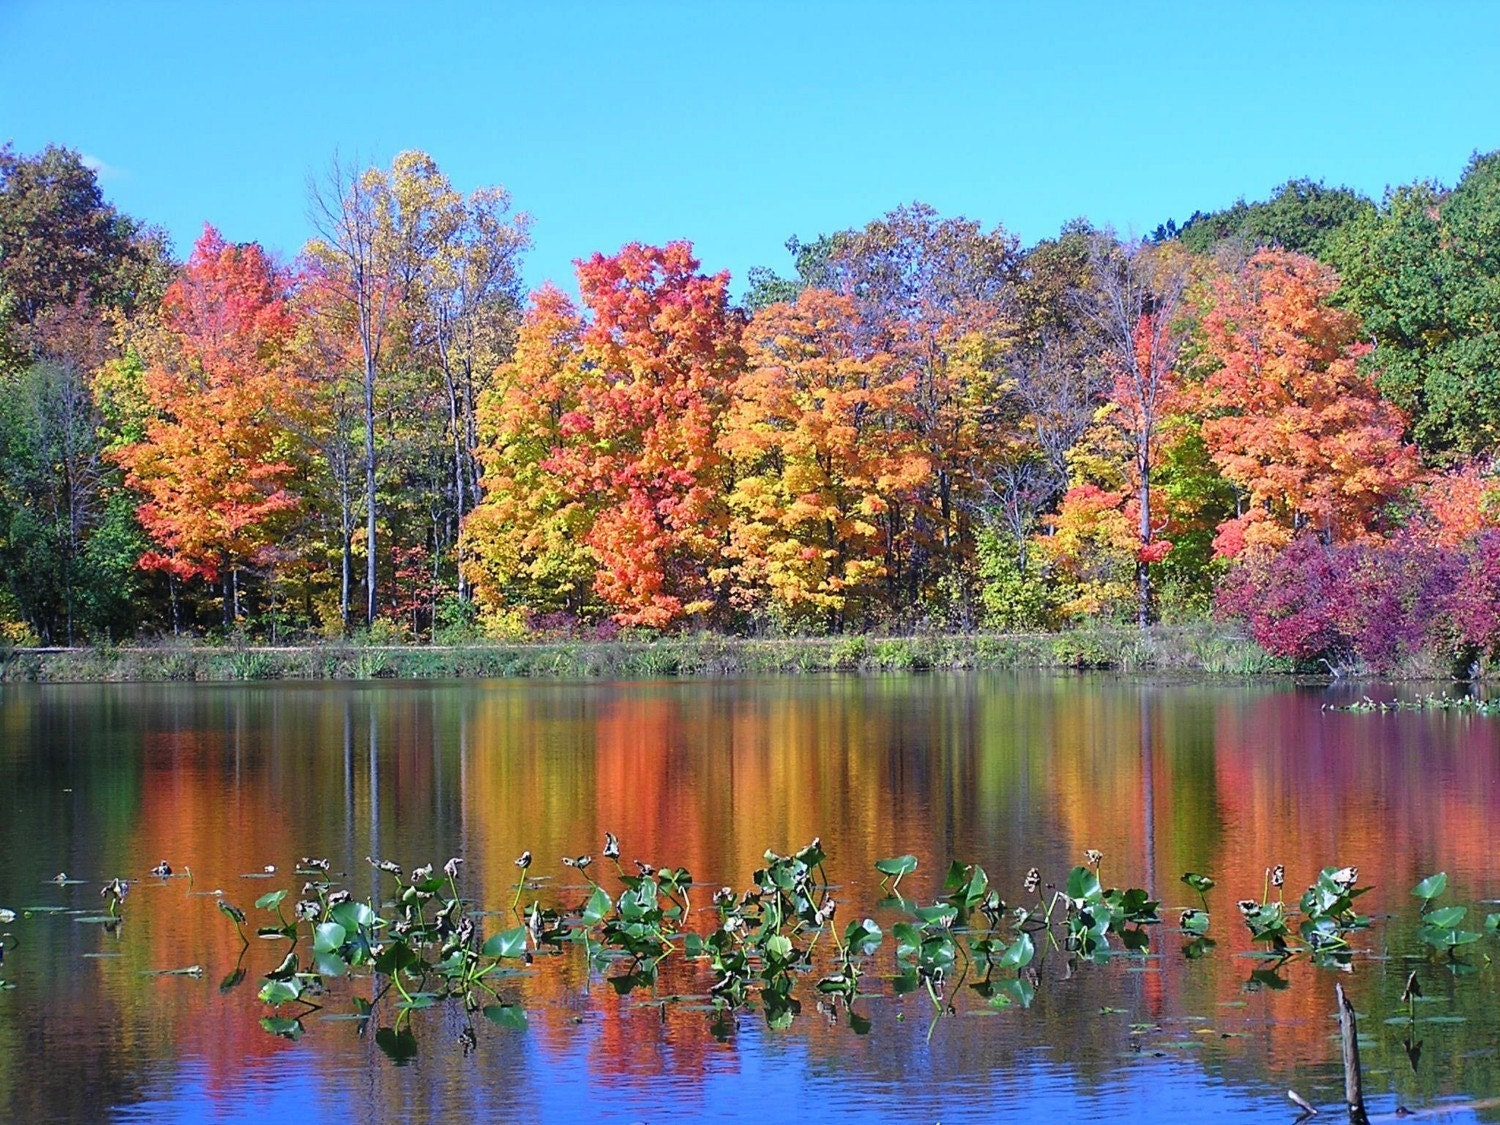 autumn fall reflection pond nature trees tree leaves 8x10 ohio 4x6 5x7 decor landscape colorful photograph snow scenery etsy glad